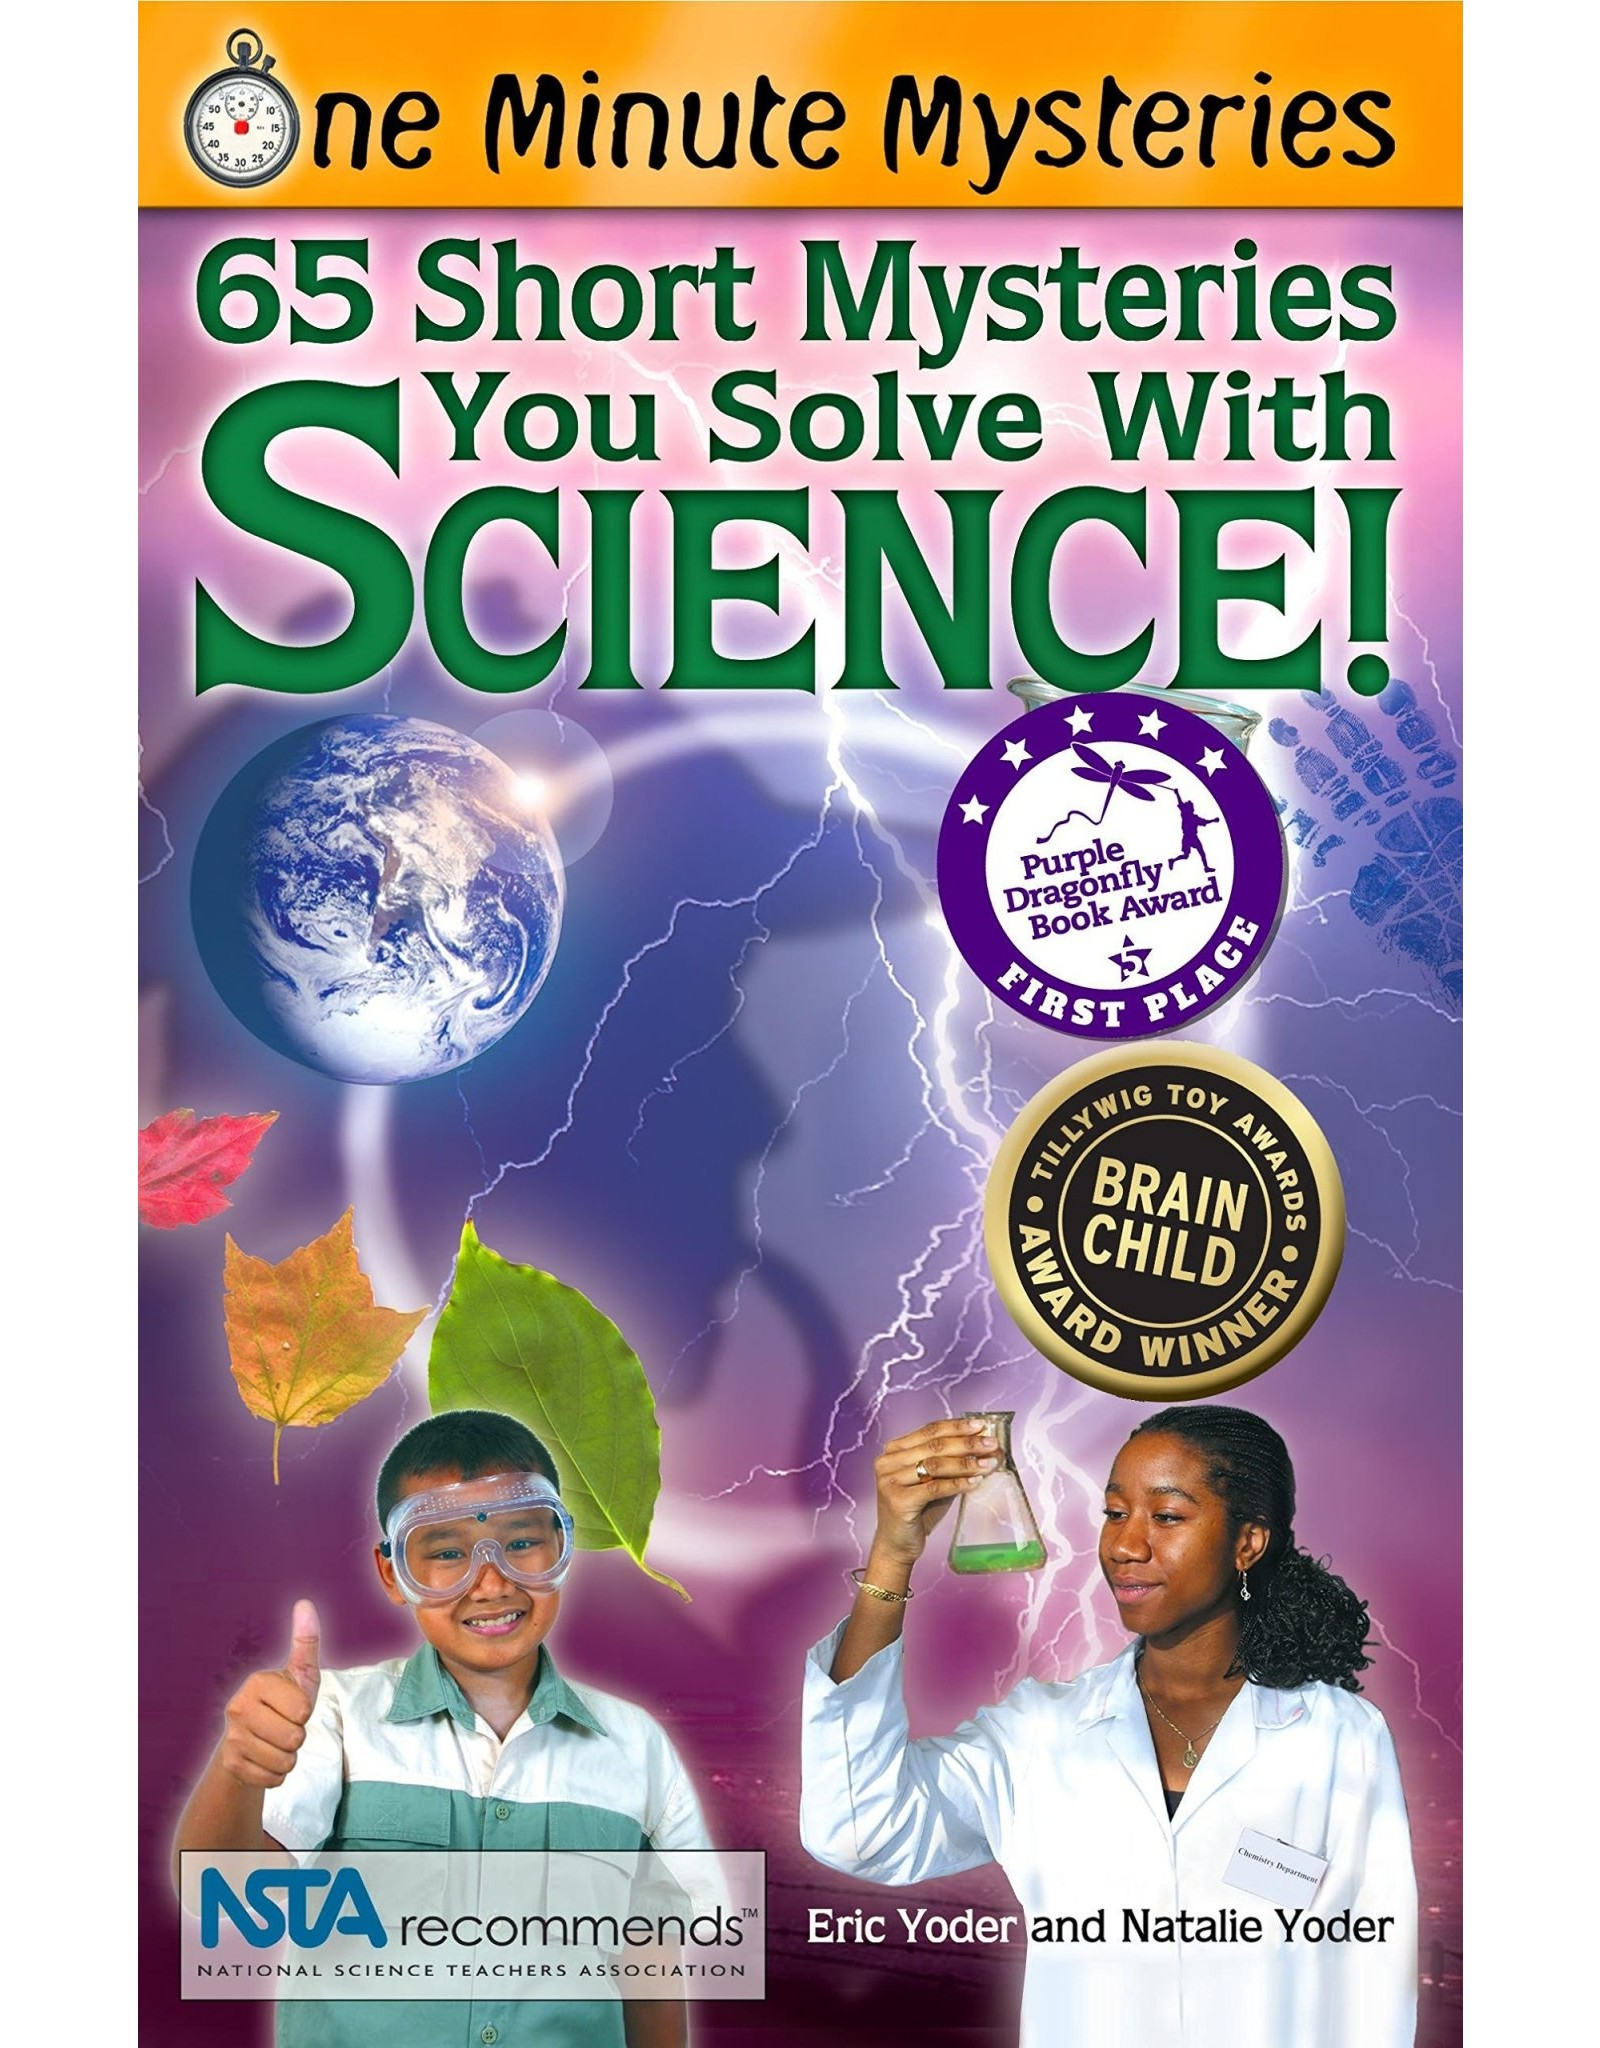 Science, Naturally! One Minute Mysteries: 65 Short Mysteries You Solve with Science!